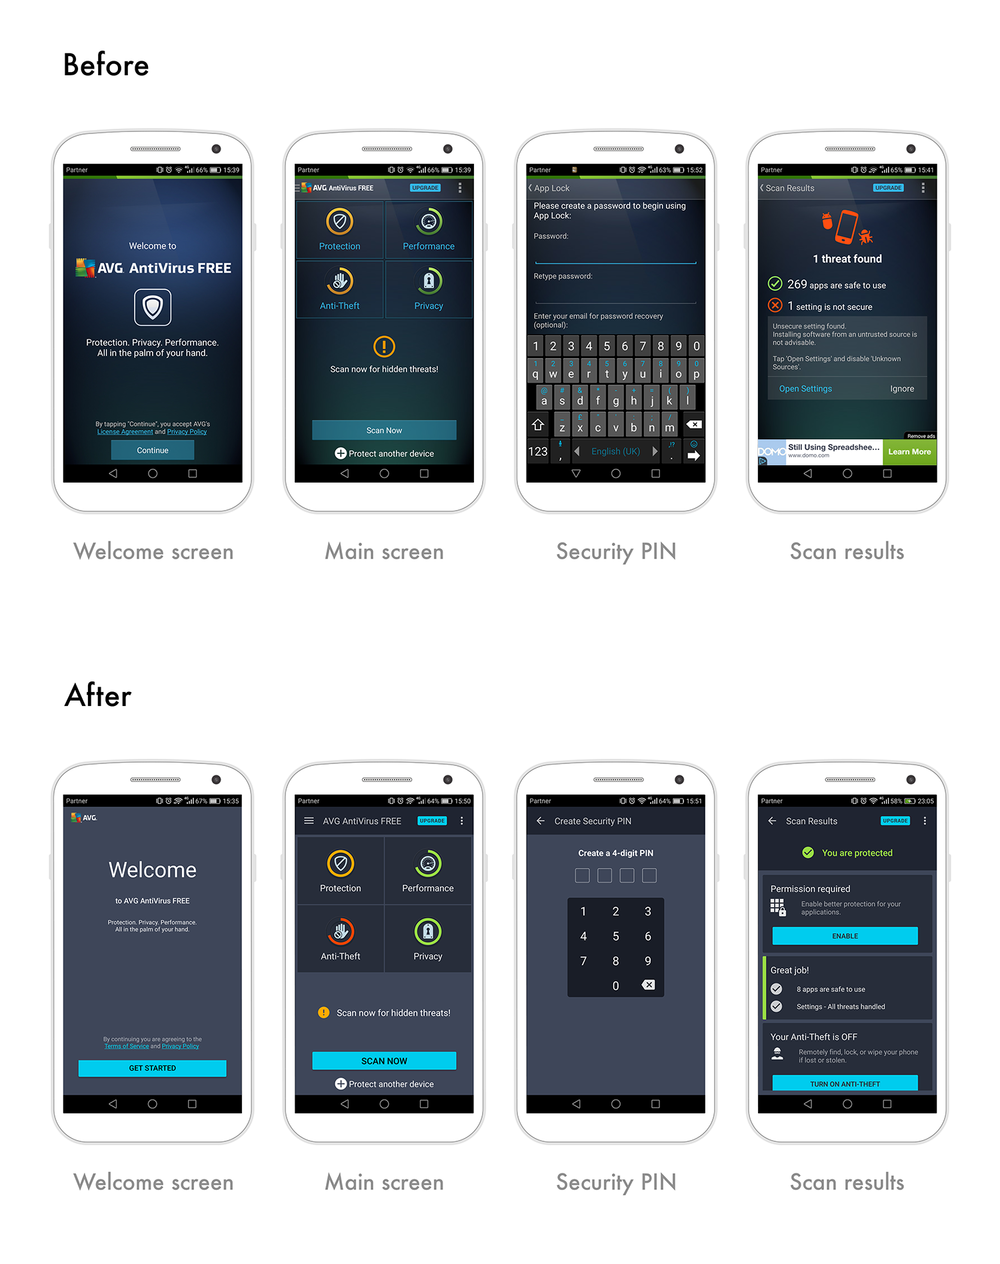 Before/after transitioning to Material Design